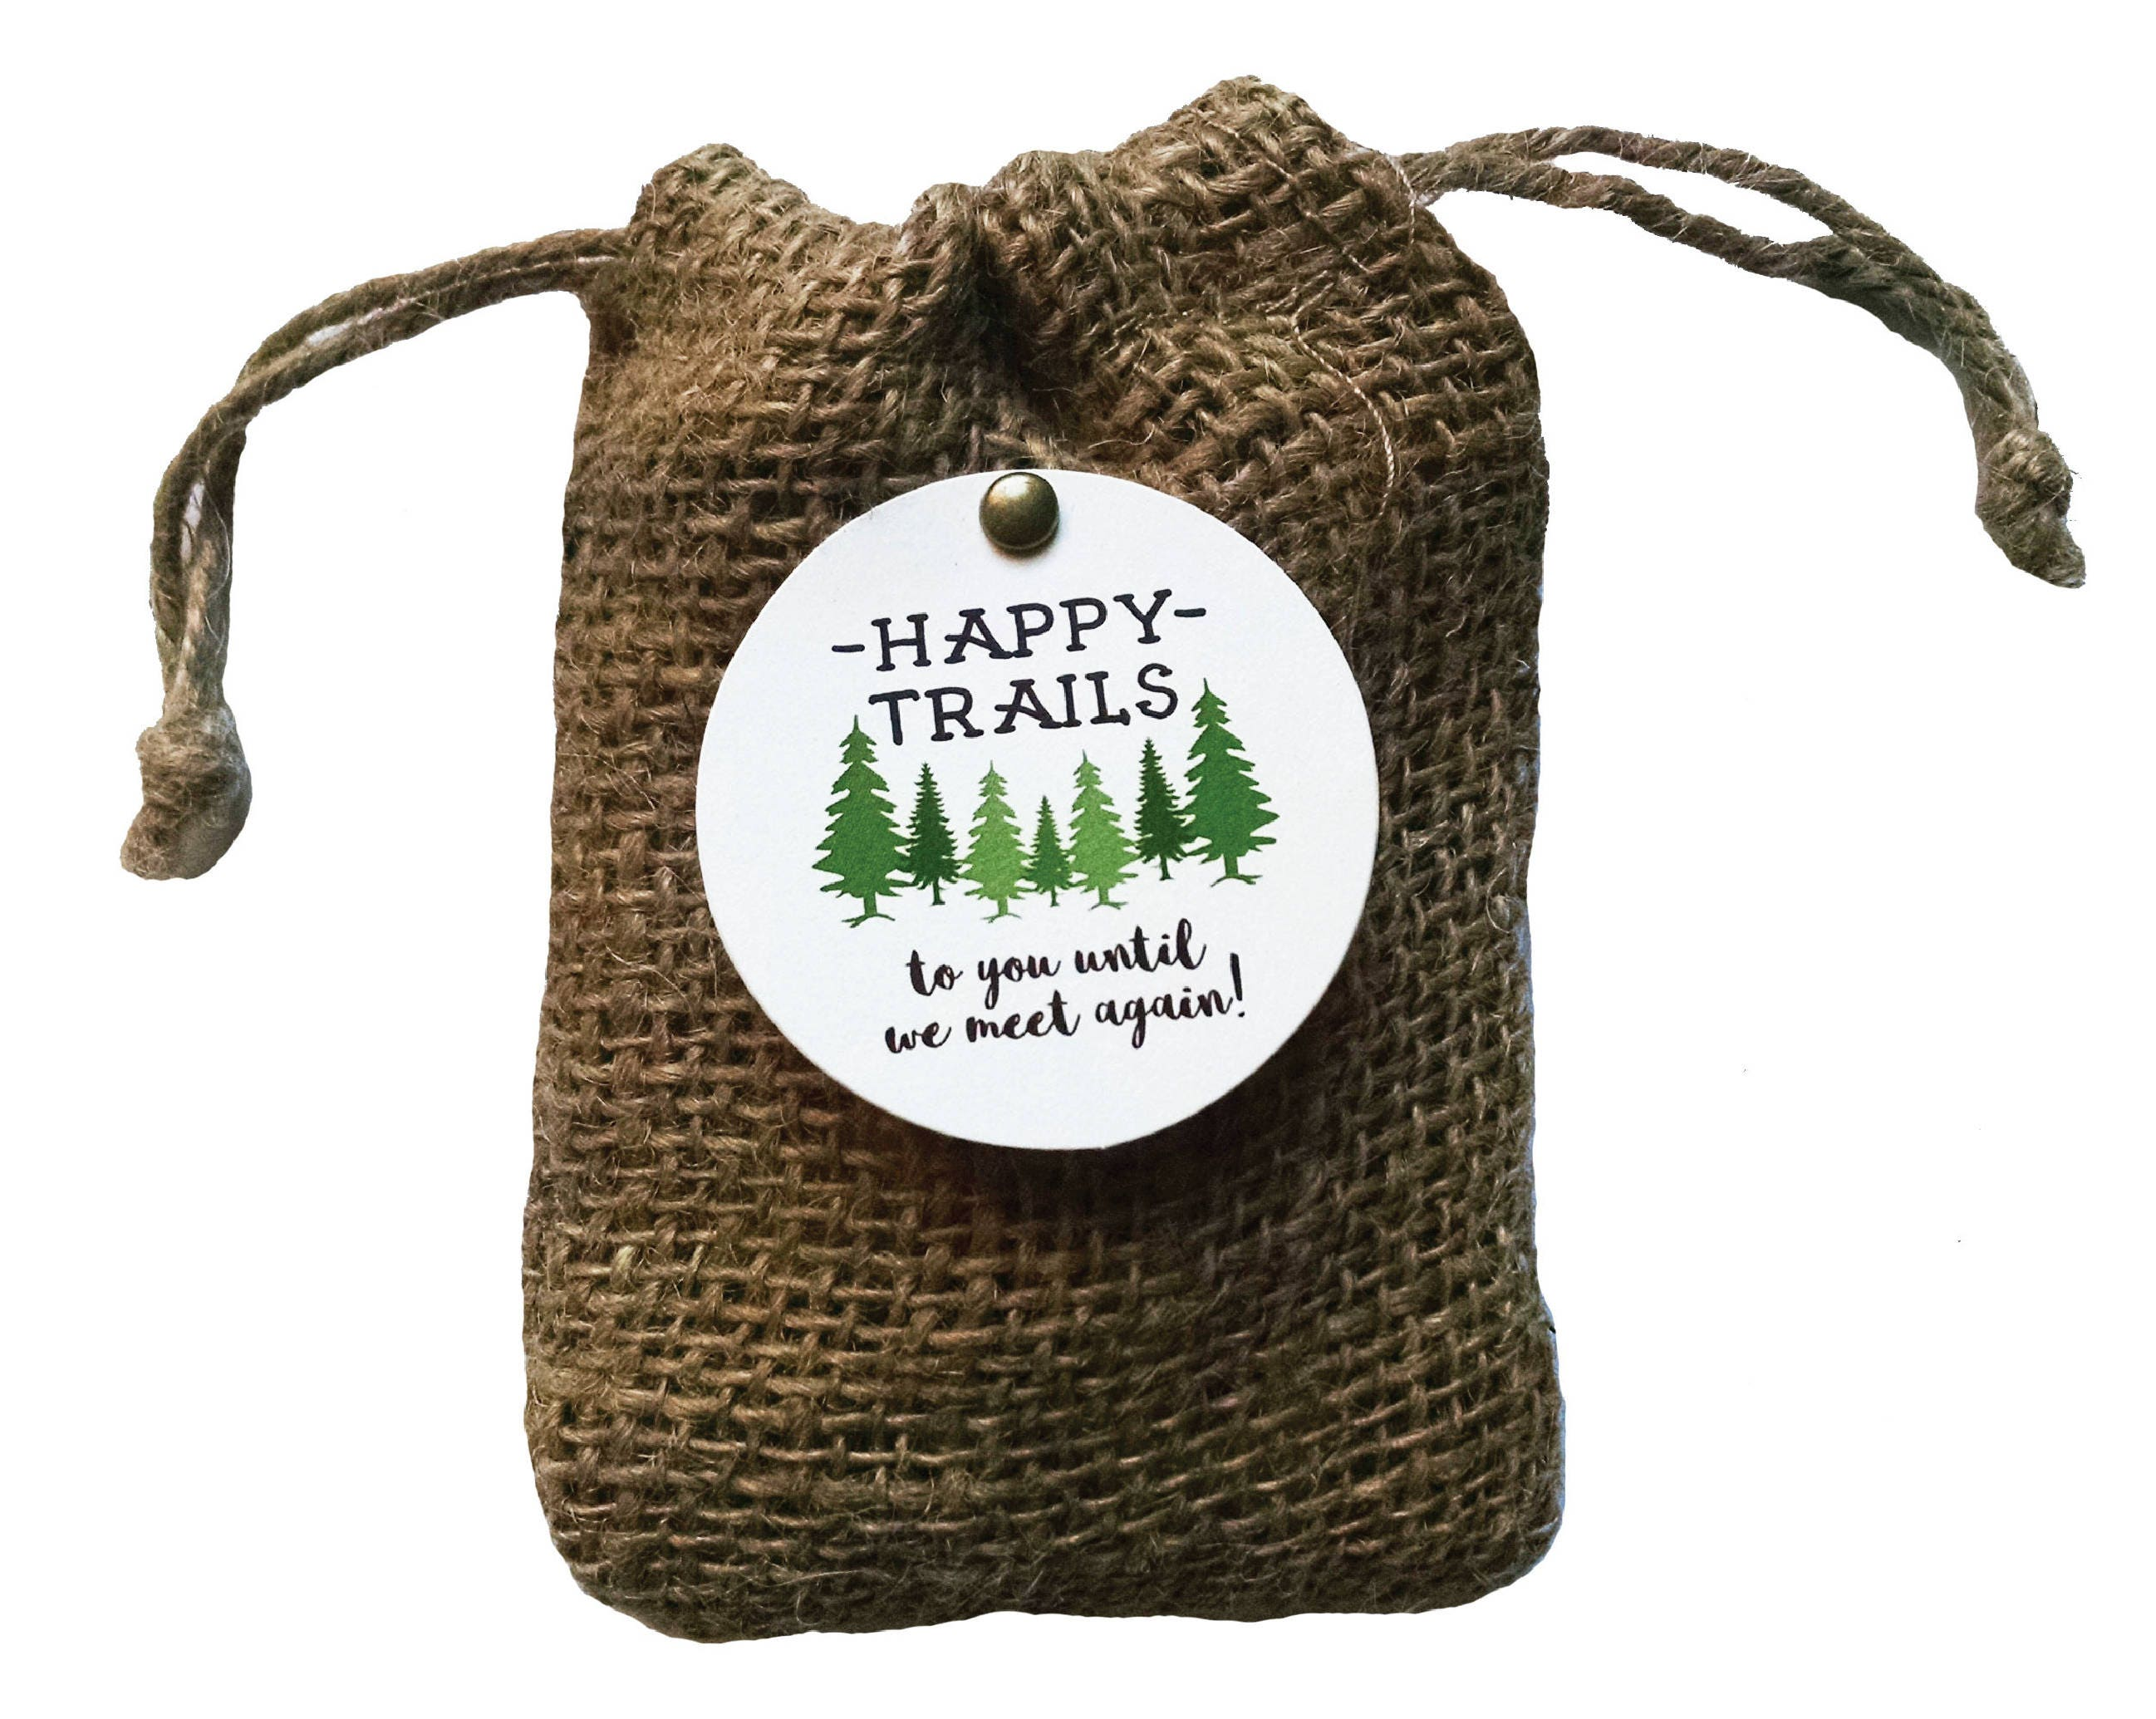 Trail Mix Happy Trails Wedding Favors Shower Favors Going